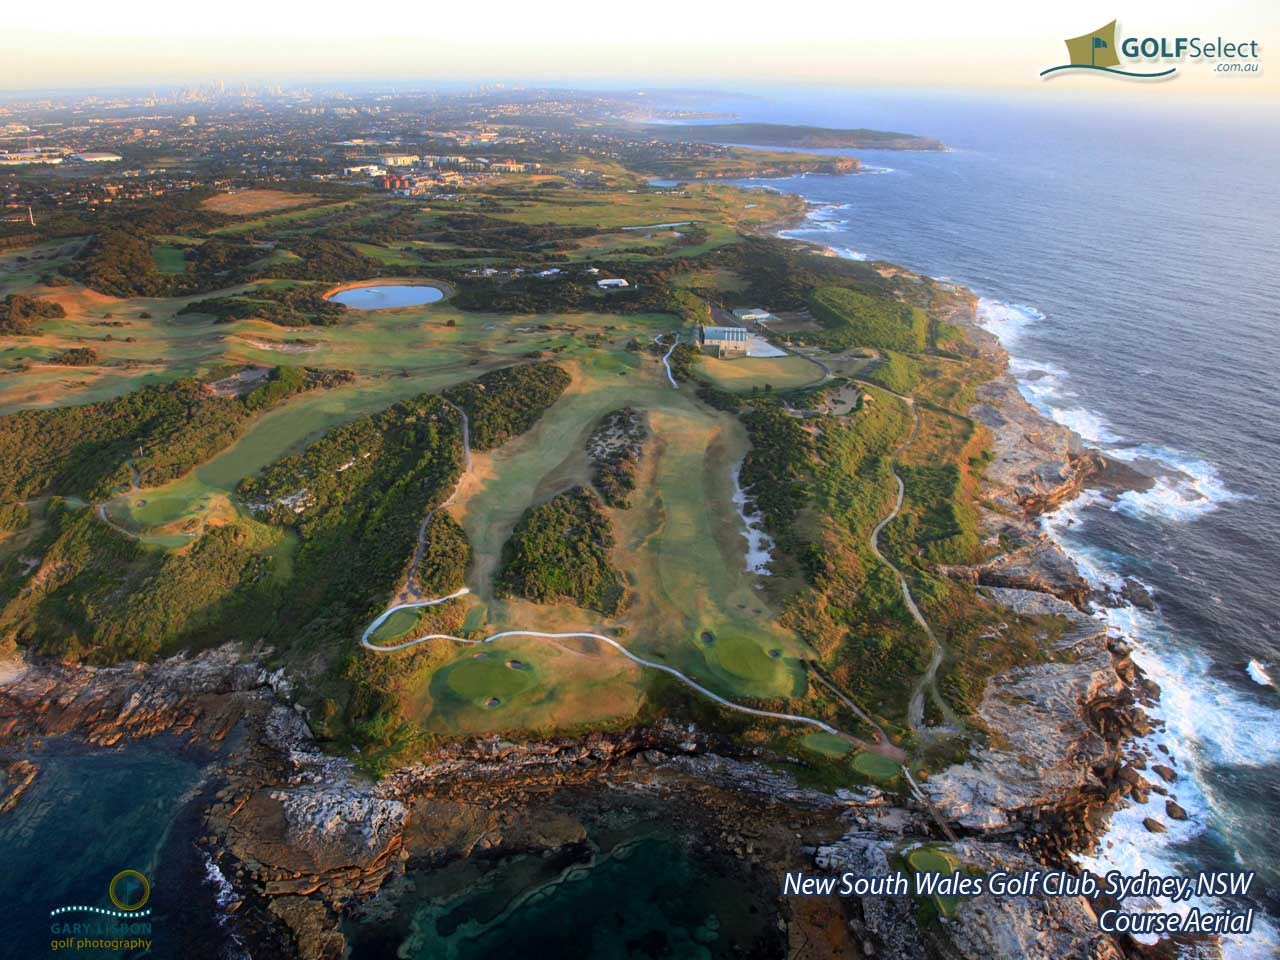 The New South Wales Golf Club Aerial Image of Golf Course